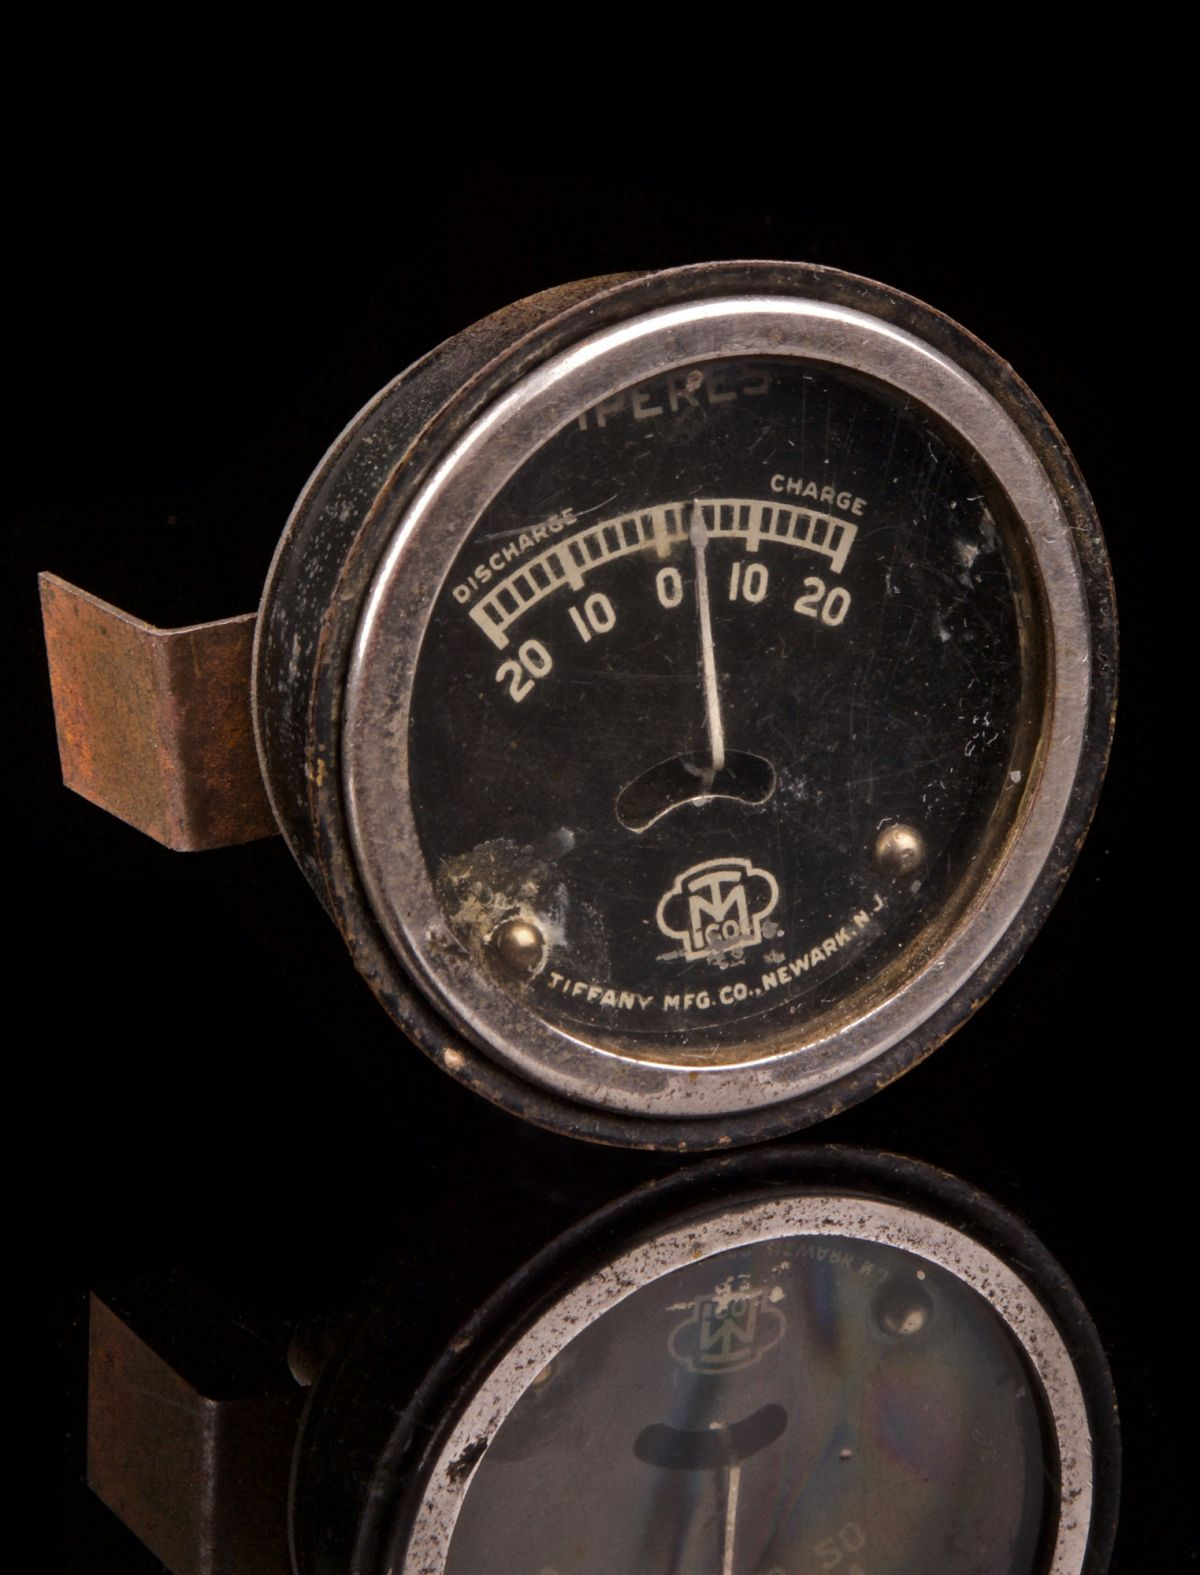 TIFFANY MFG CO AMP METER - STEAM PUNK